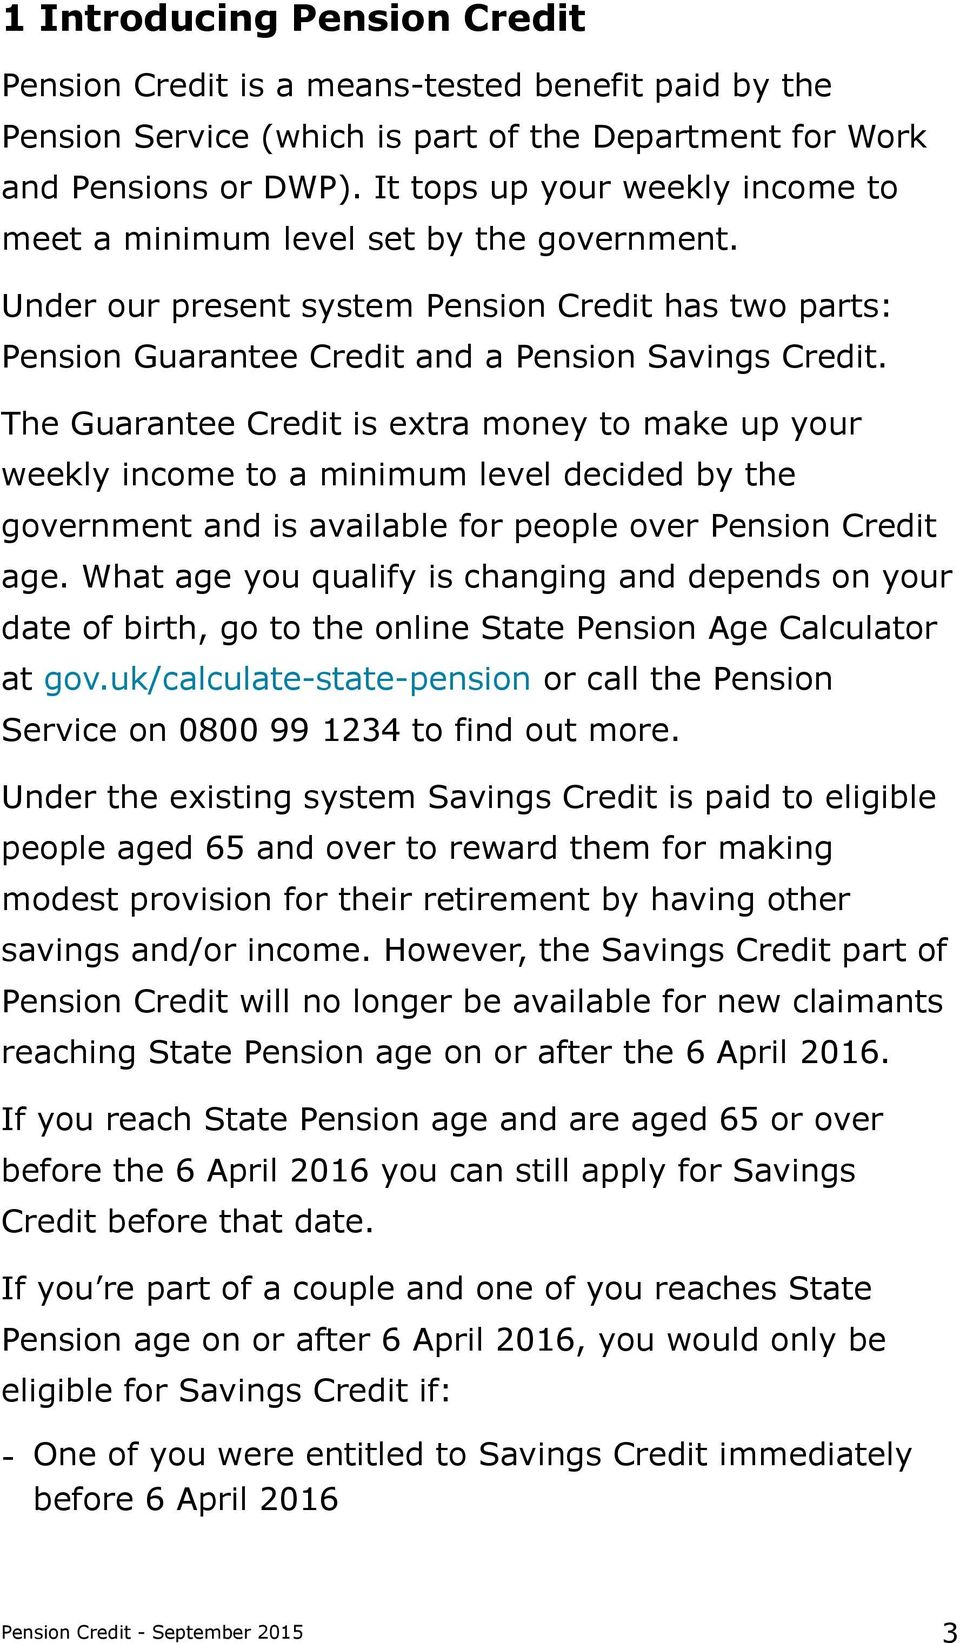 The Guarantee Credit is extra money to make up your weekly income to a minimum level decided by the government and is available for people over Pension Credit age.